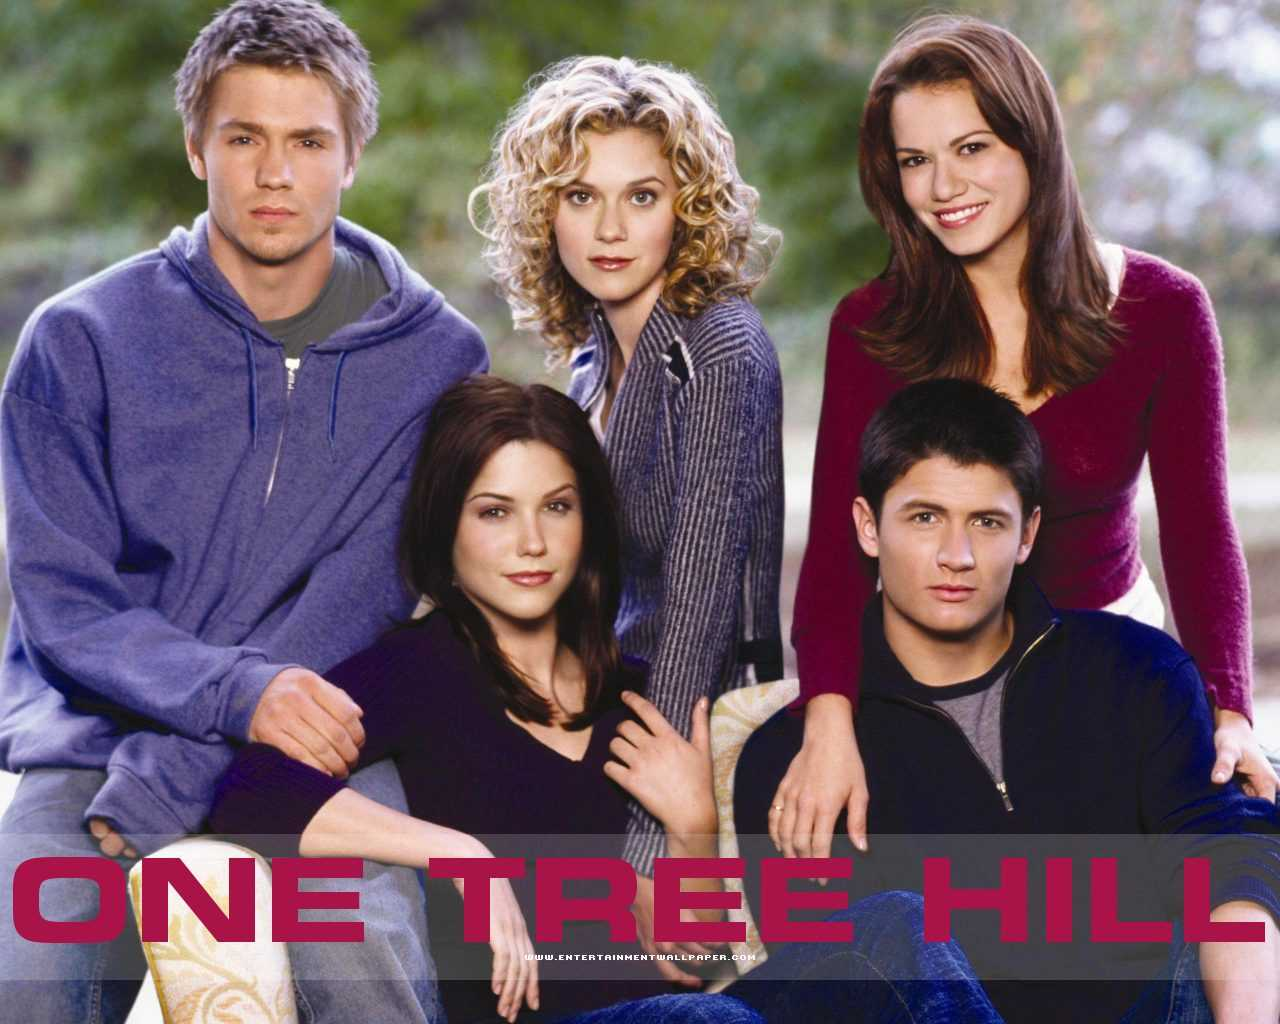 Tree Hill Will Always Be Home: 'One Tree Hill' Celebrates 11th Anniversary | One Tree Hill